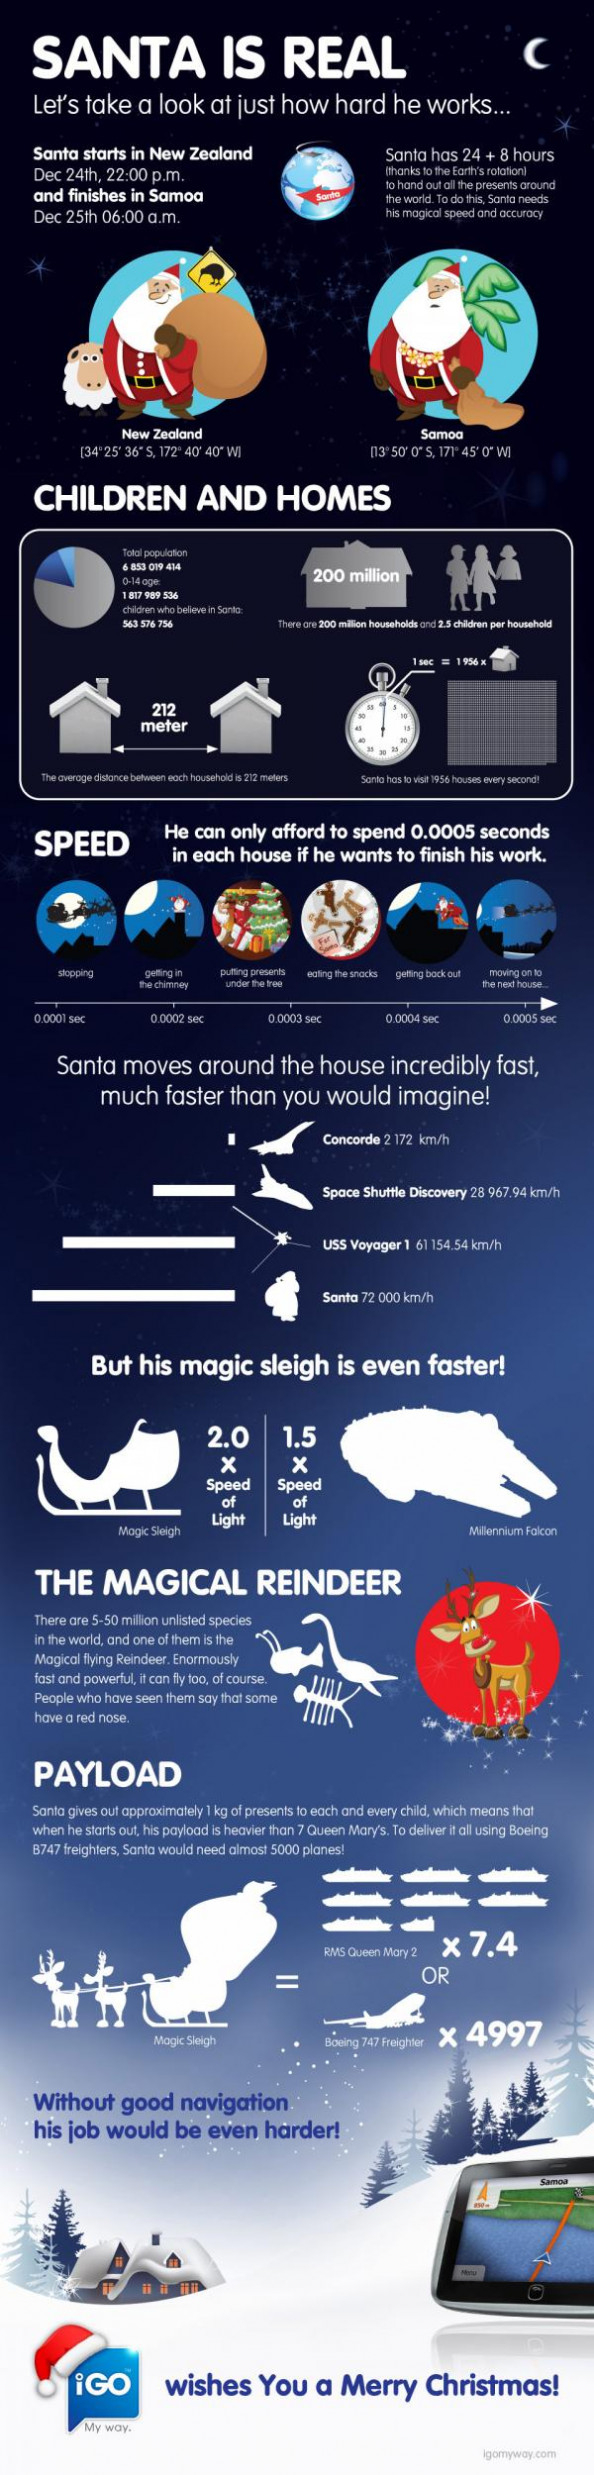 Santa Is Real Infographic